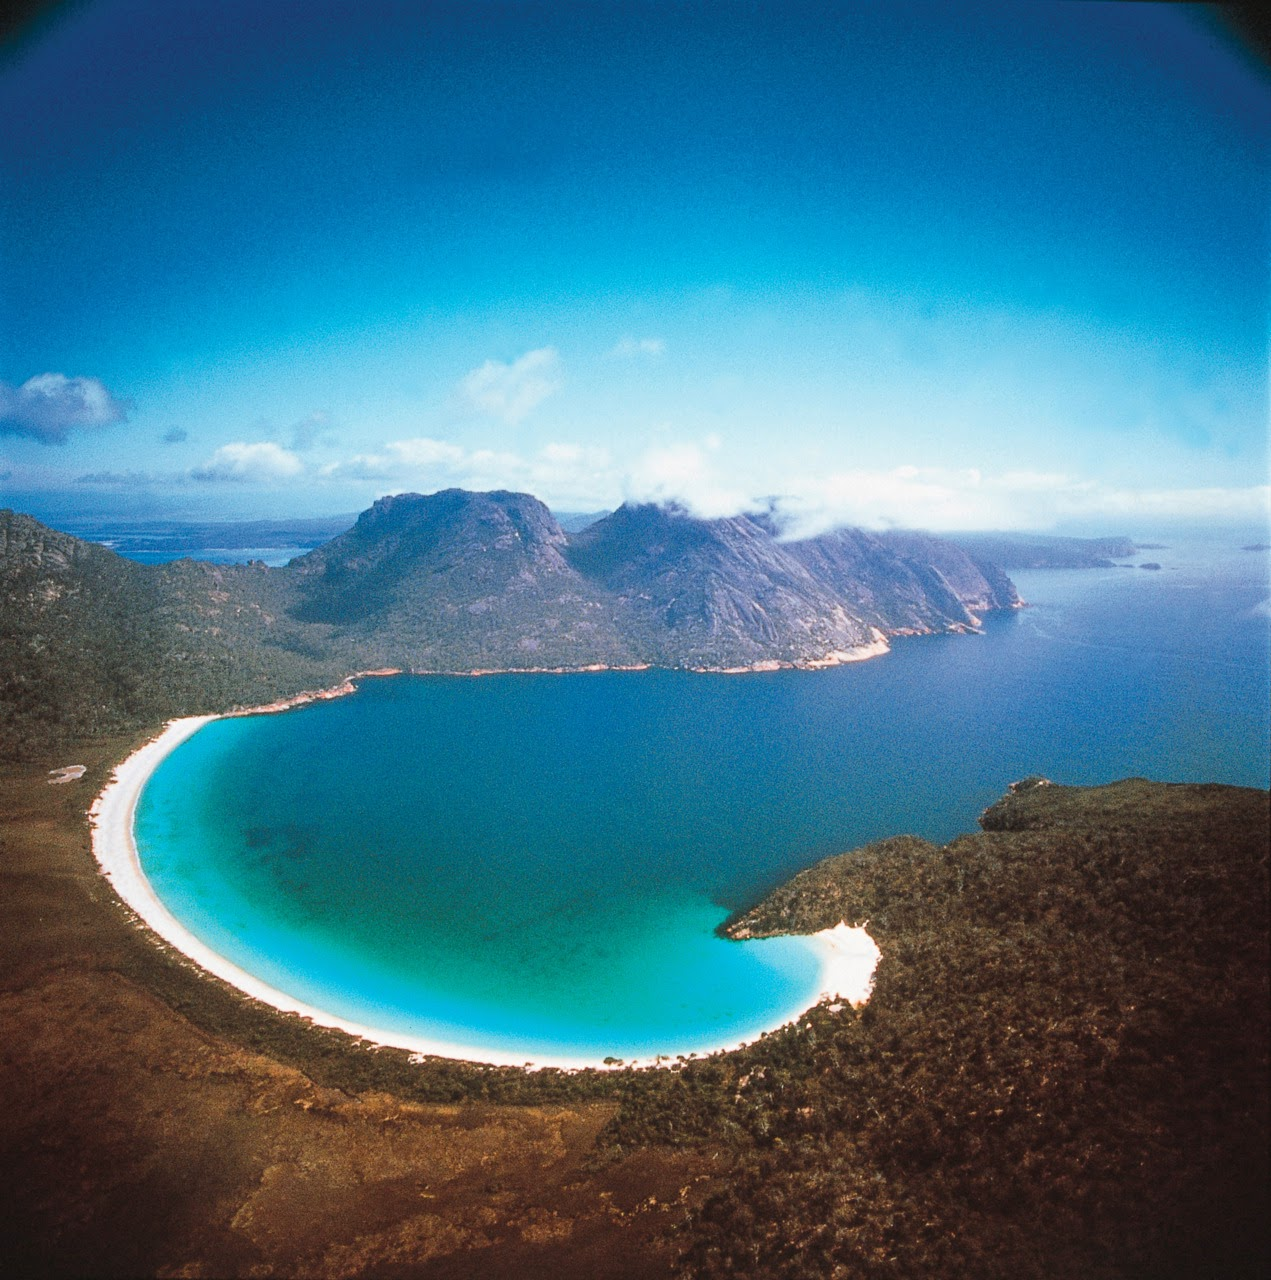 Australia Beautiful Places: Amazing Places To Visit Before Kicking The Bucket